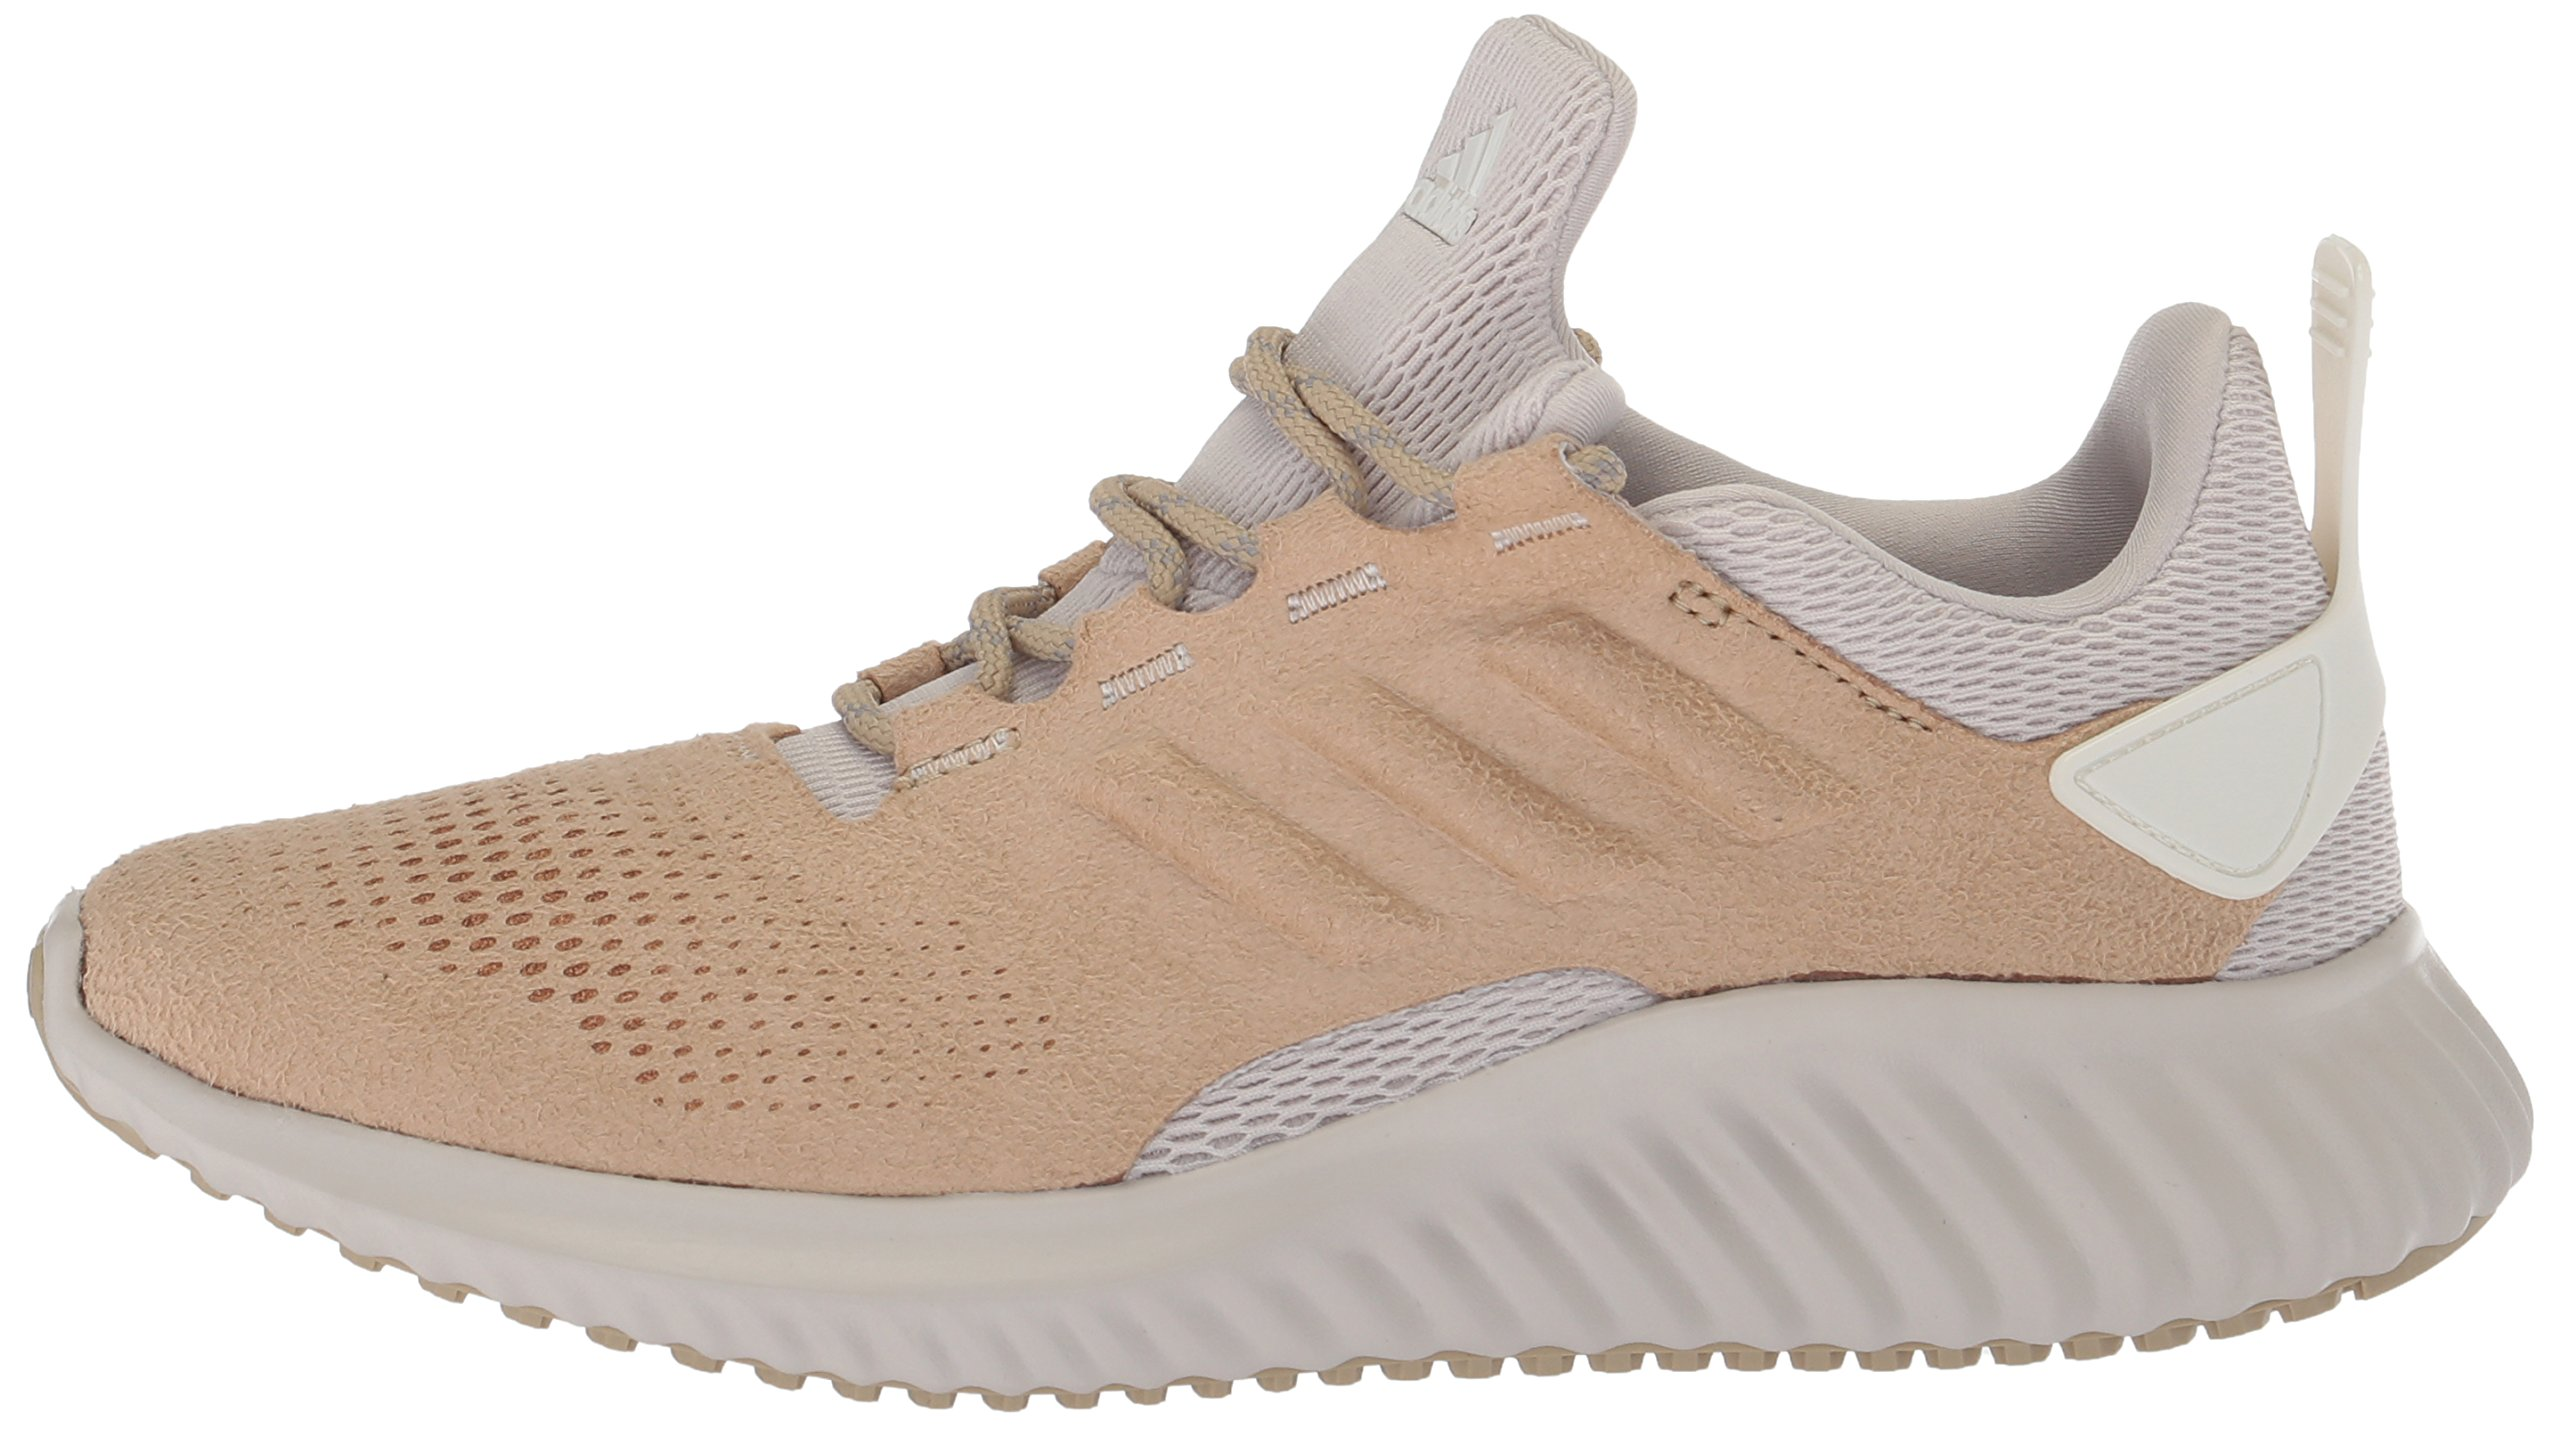 92bfc7f87 adidas Men s Alphabounce CR m Running Shoe